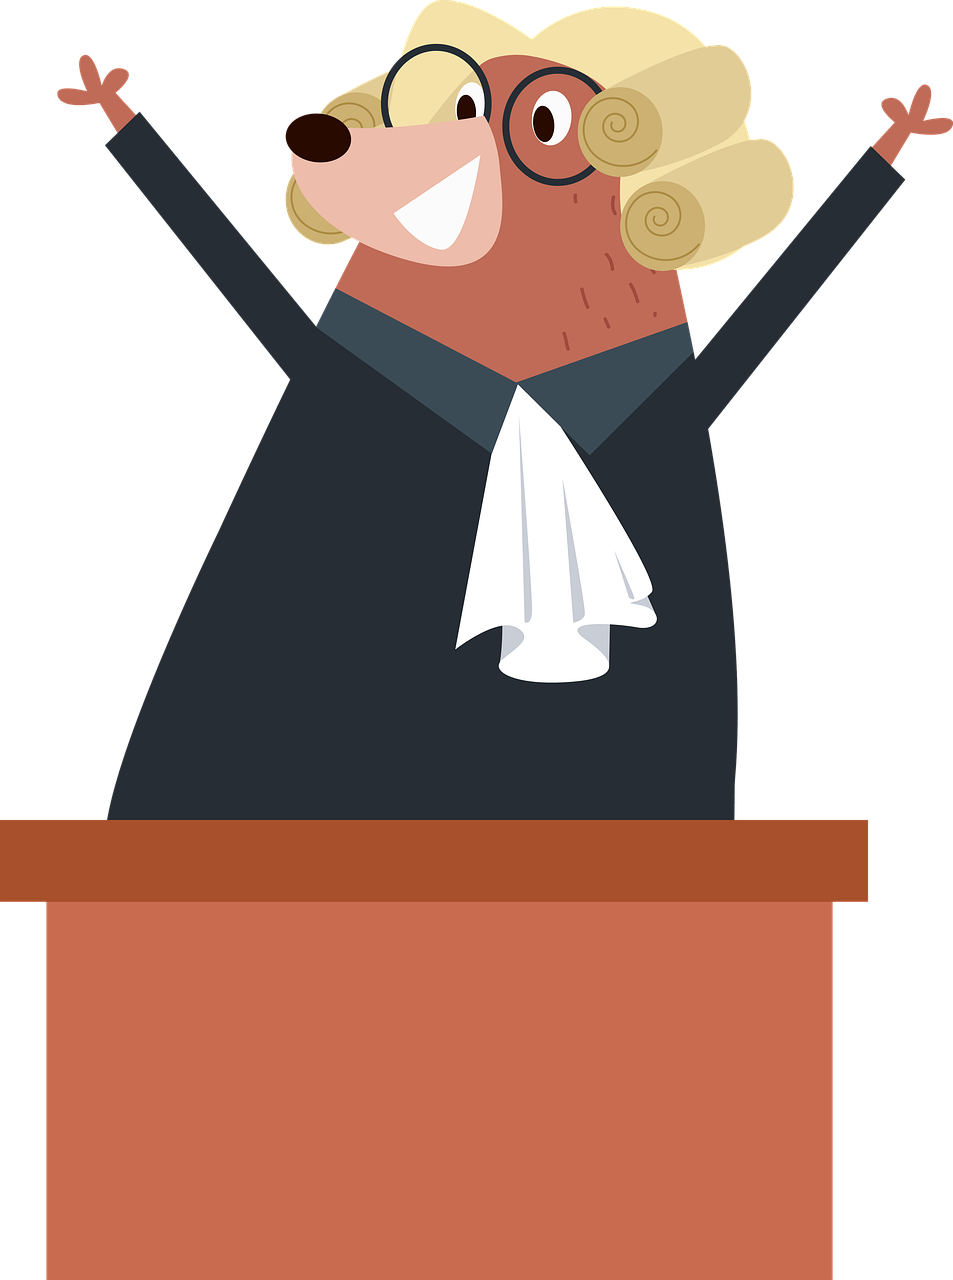 A Friendly Female Judge – Clipart Cartoons By VectorToons